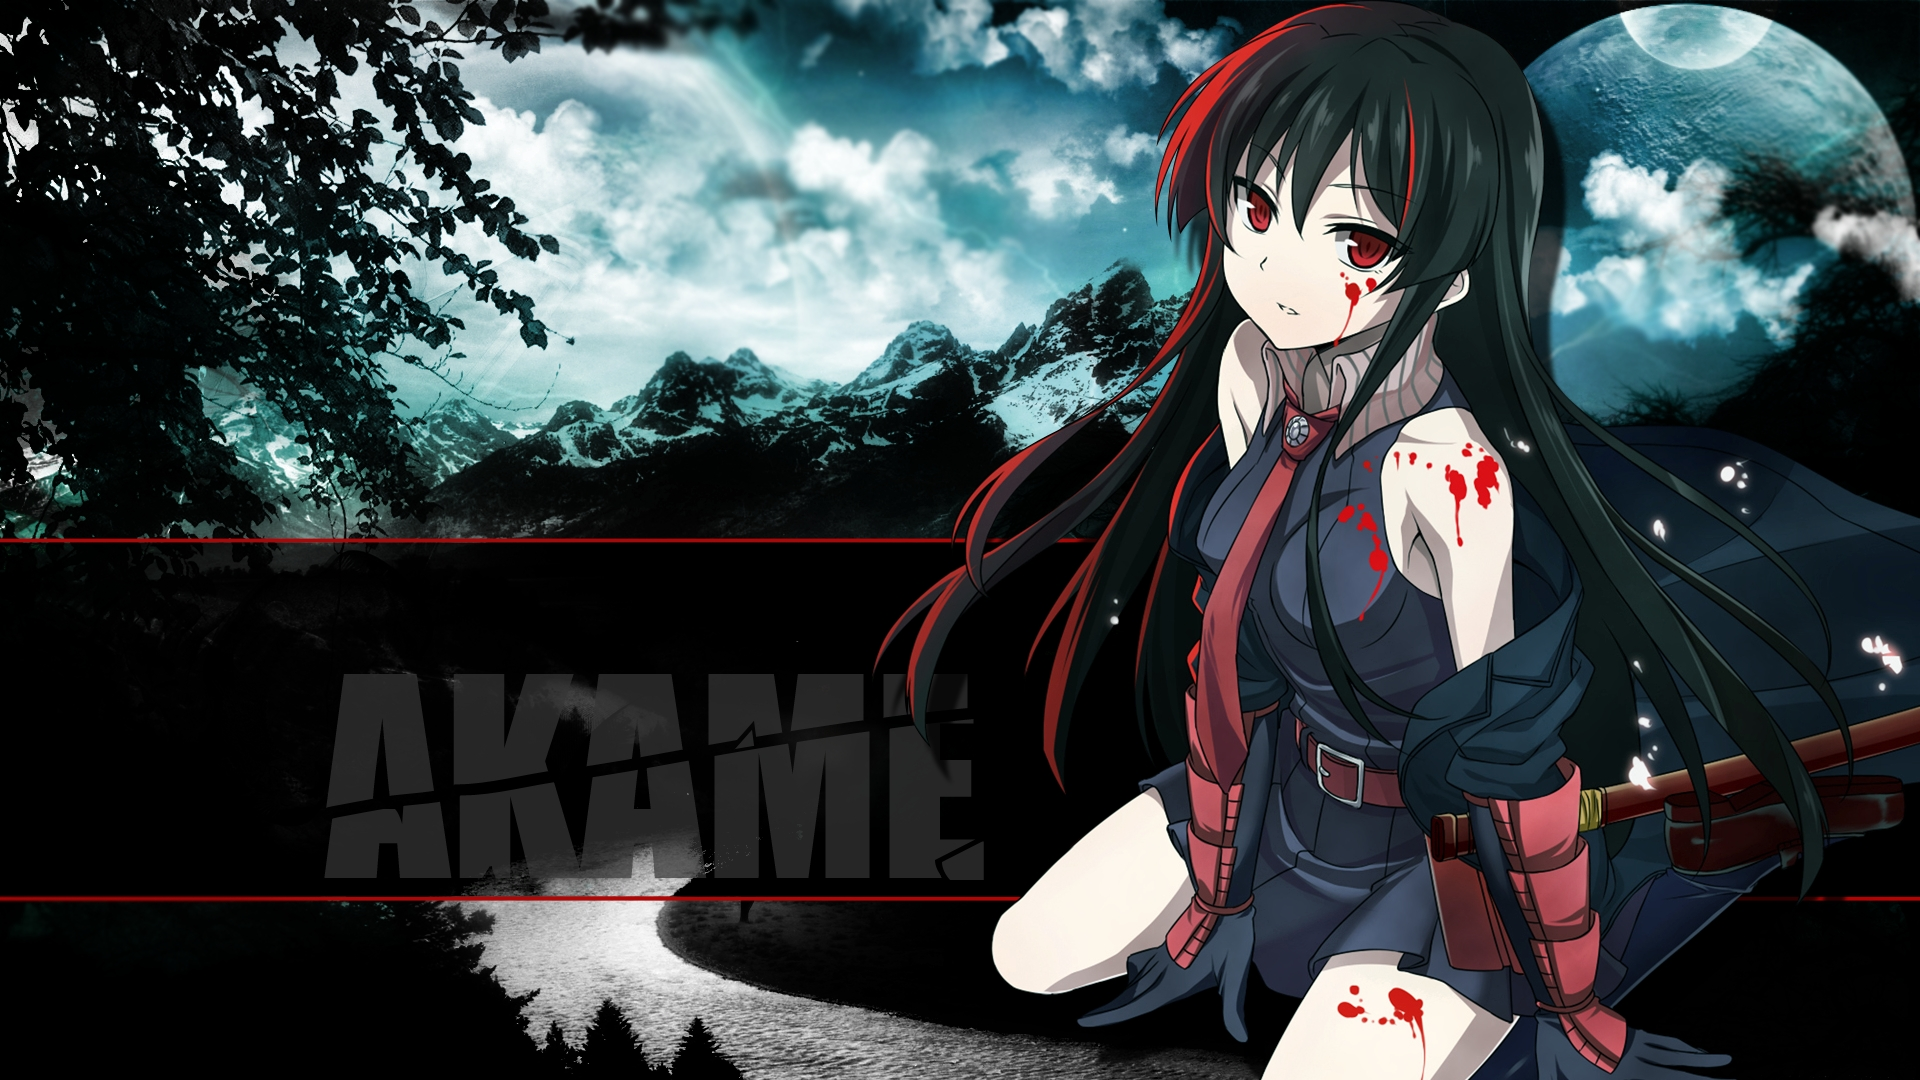 259 akame ga kill hd wallpapers | background images - wallpaper abyss